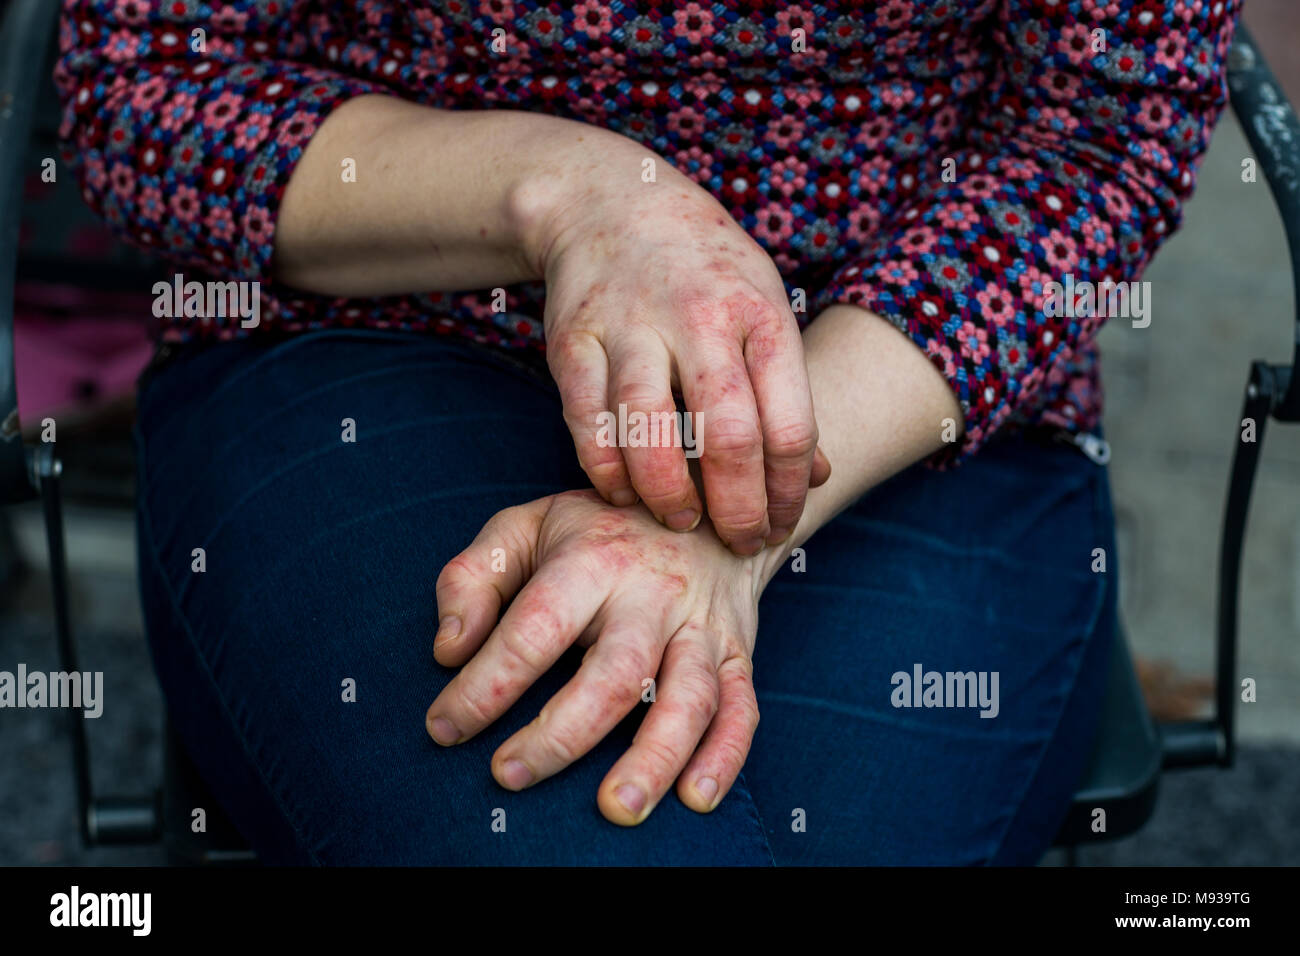 Young woman's hands with dry and stressed red dyshidrotic